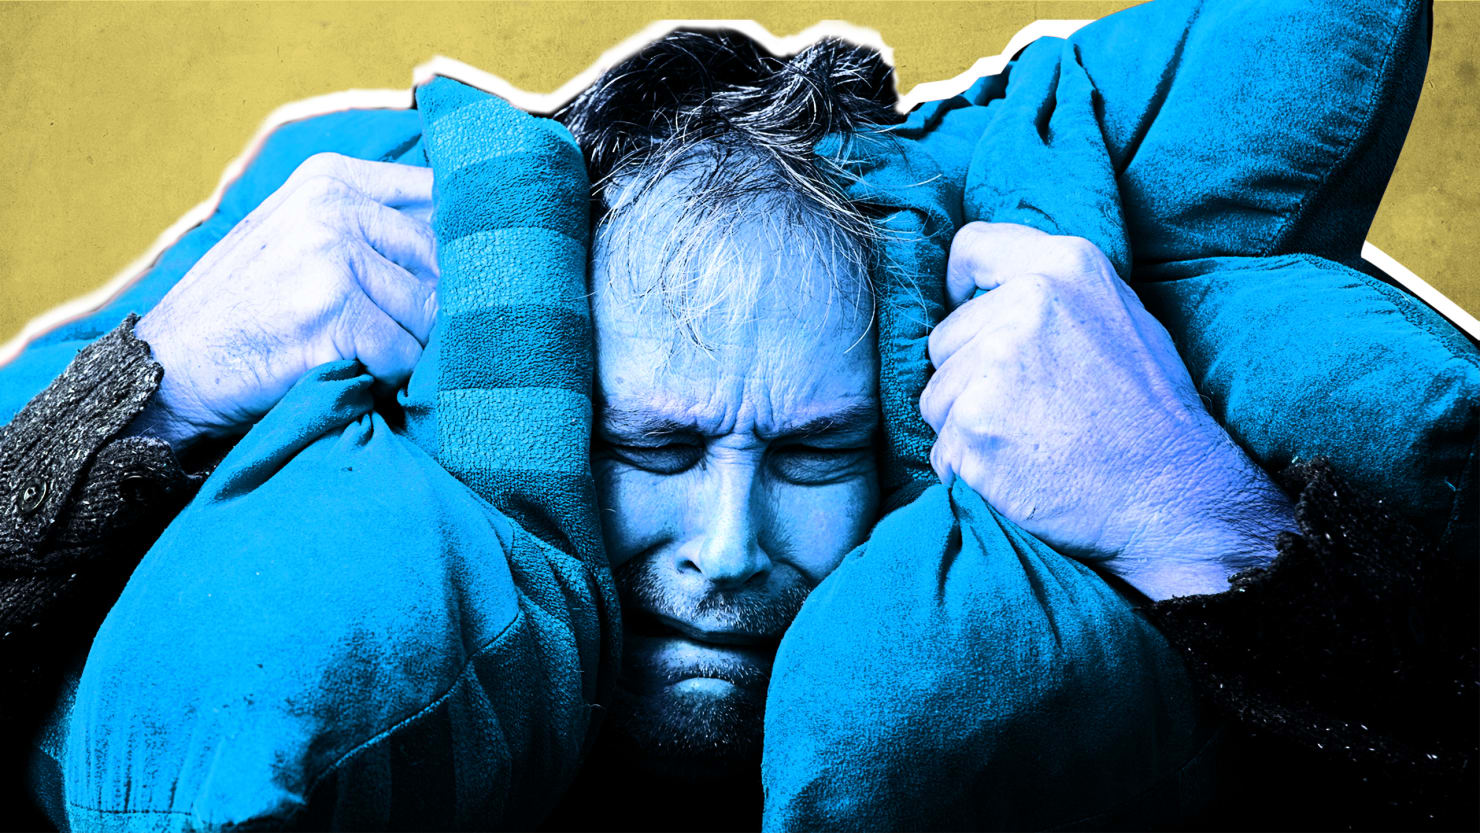 man colored in blue is in angst and holding two pillows by each ear